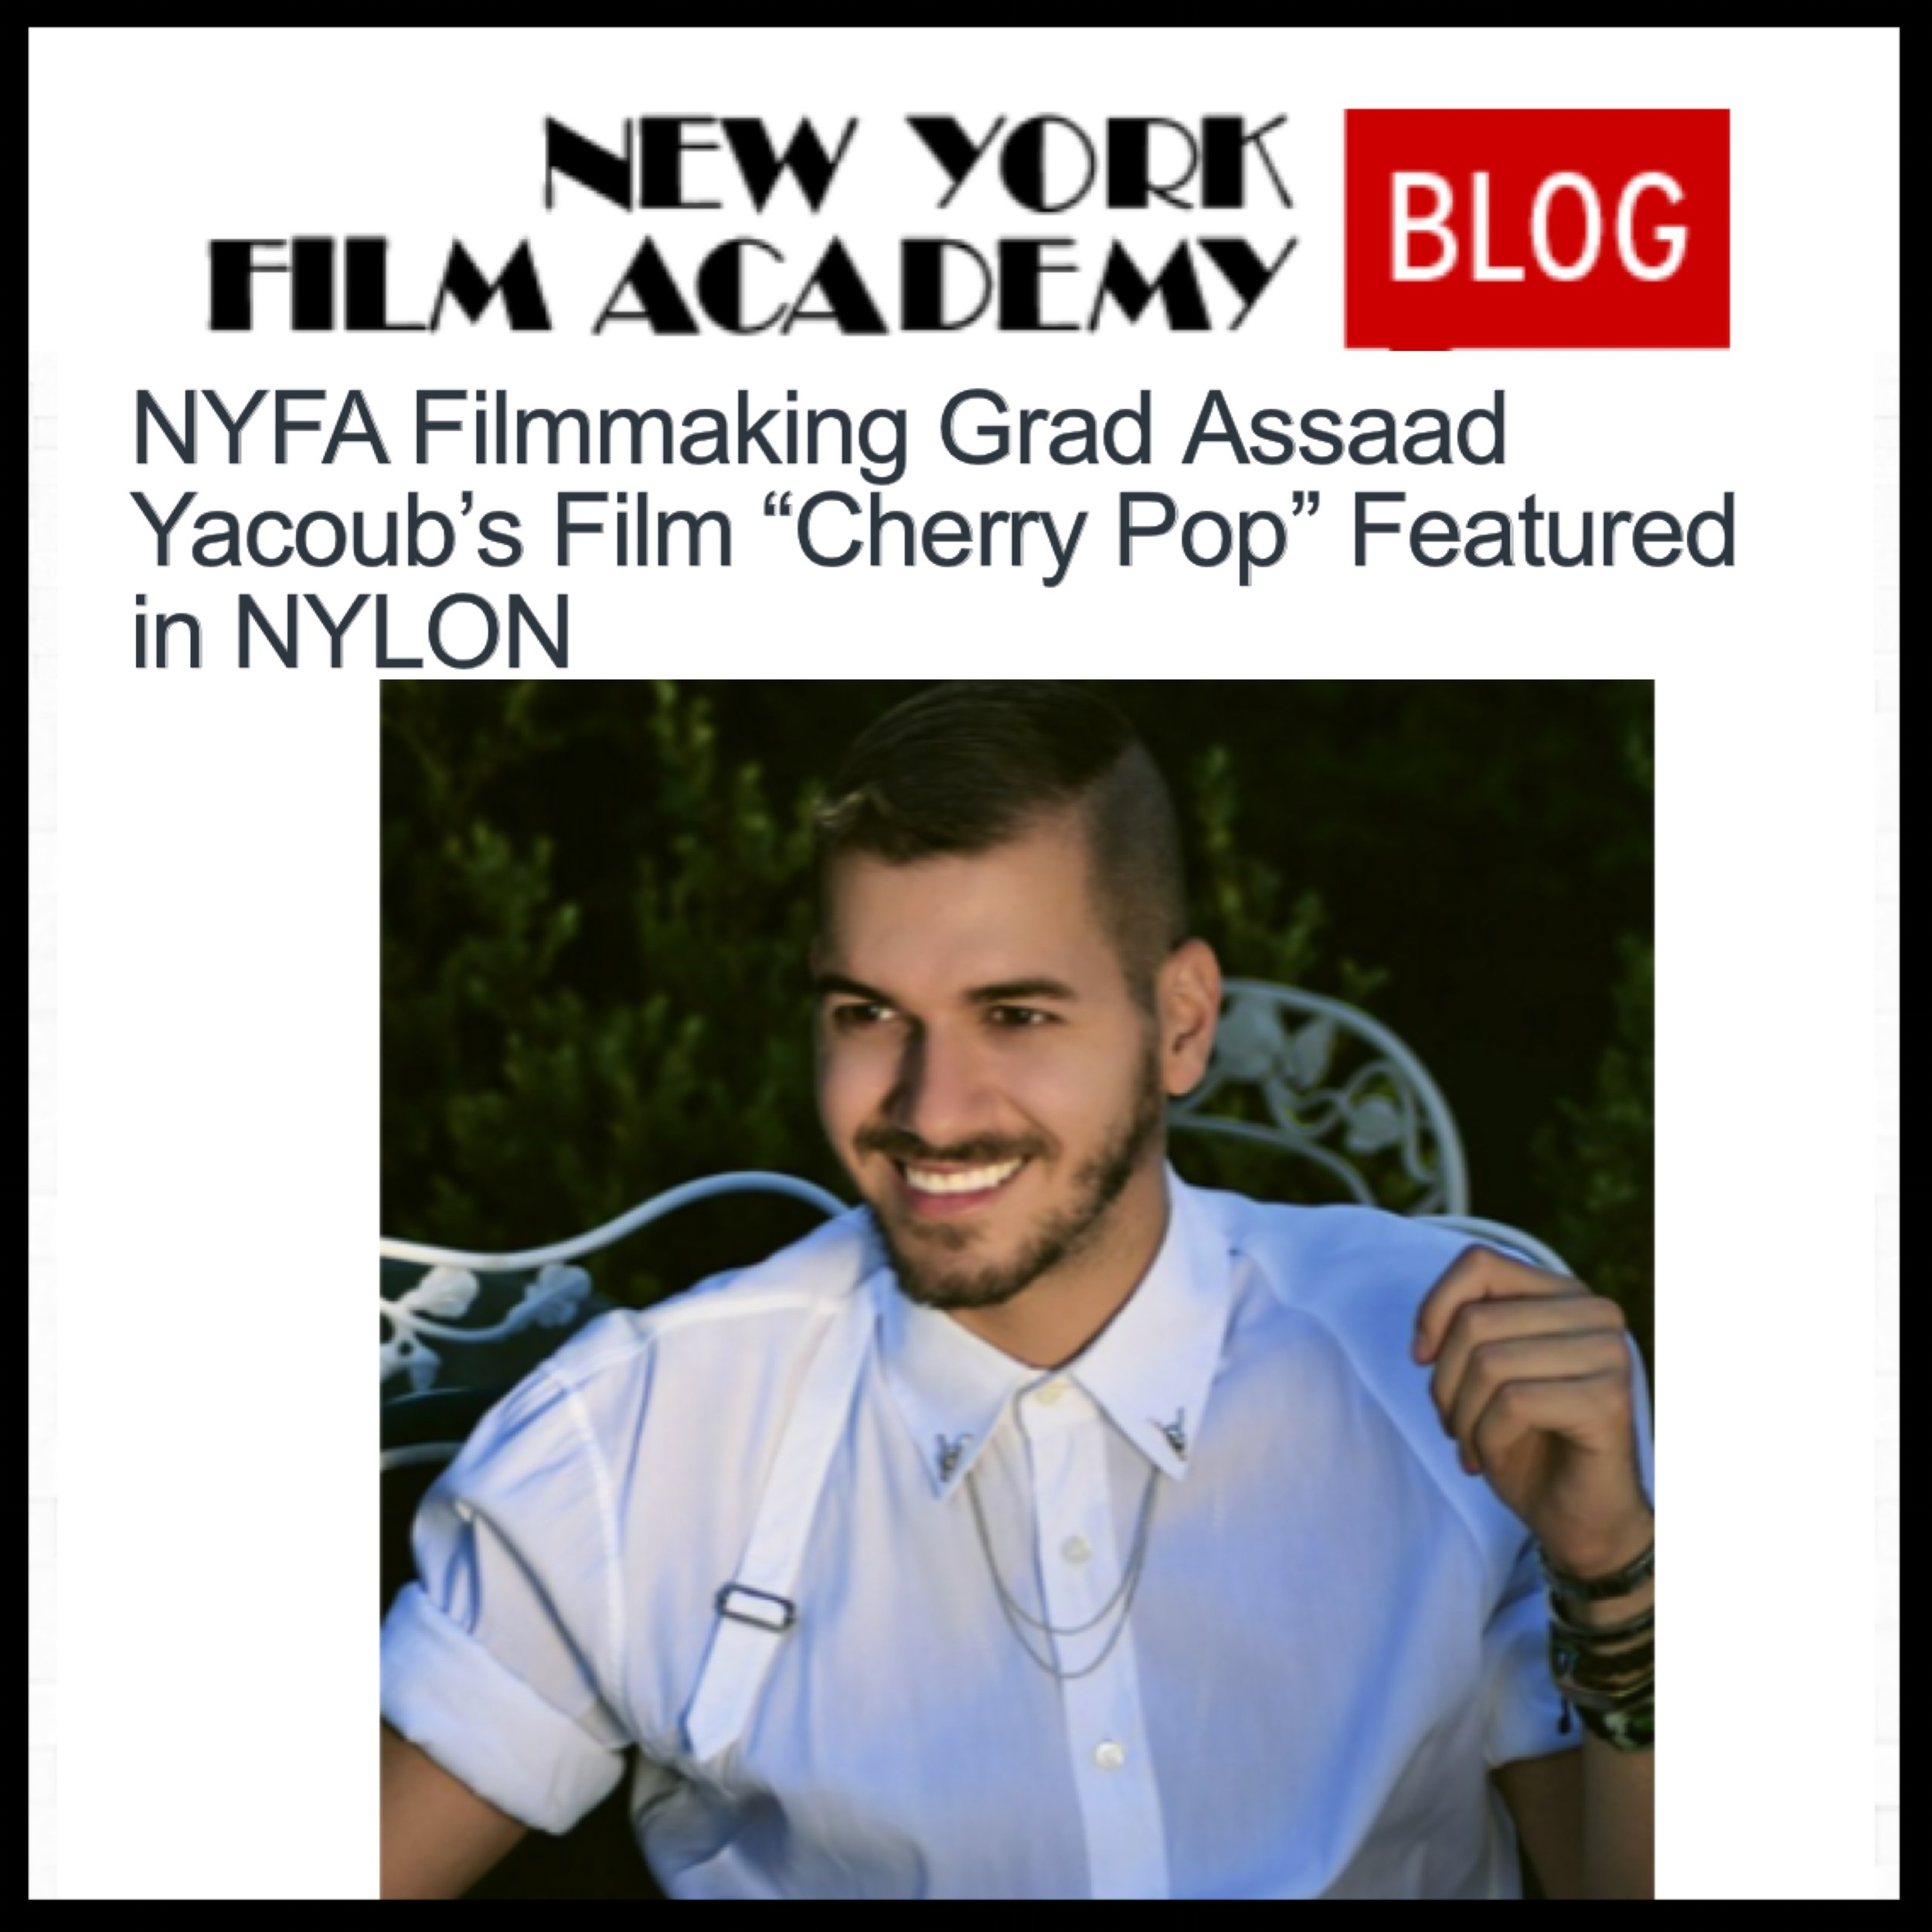 NEW YORK FILM ACADEMY BLOG